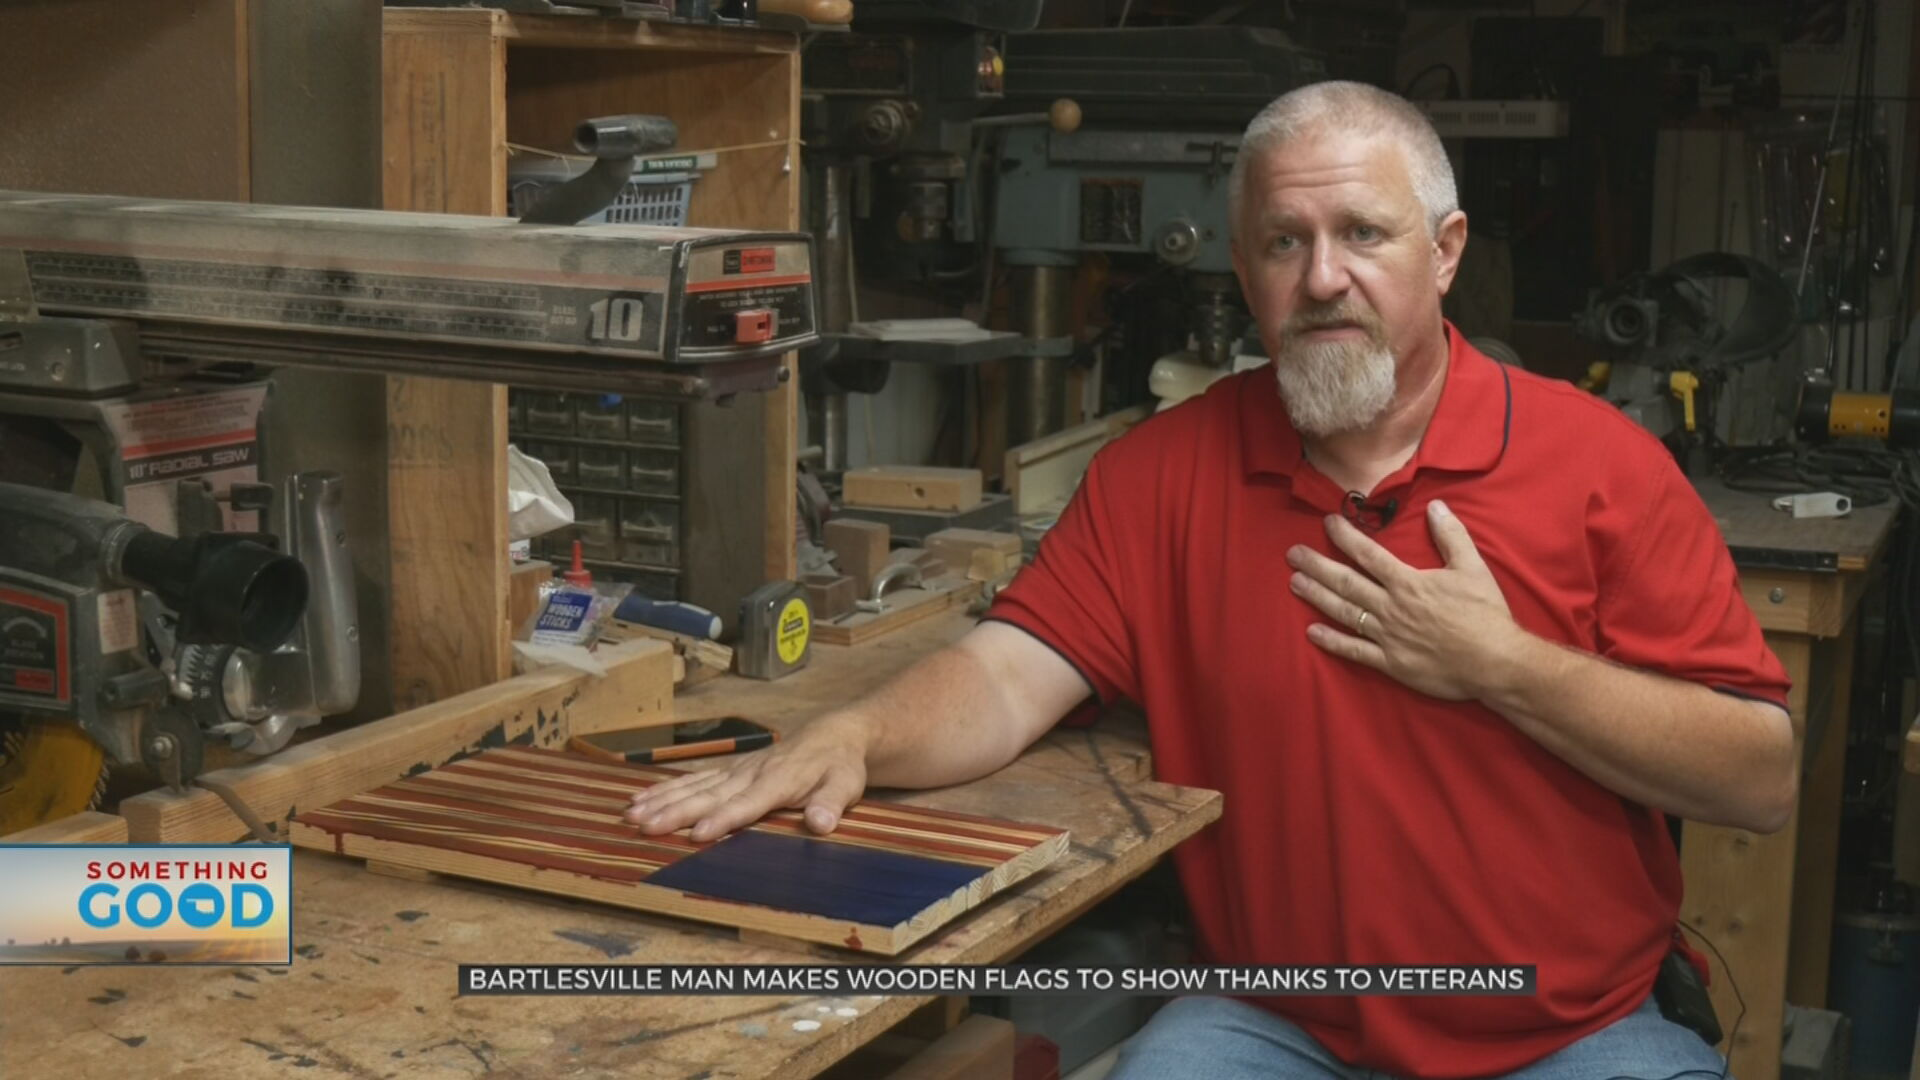 Bartlesville Man Honors Veterans By Gifting Handmade Wooden Flags